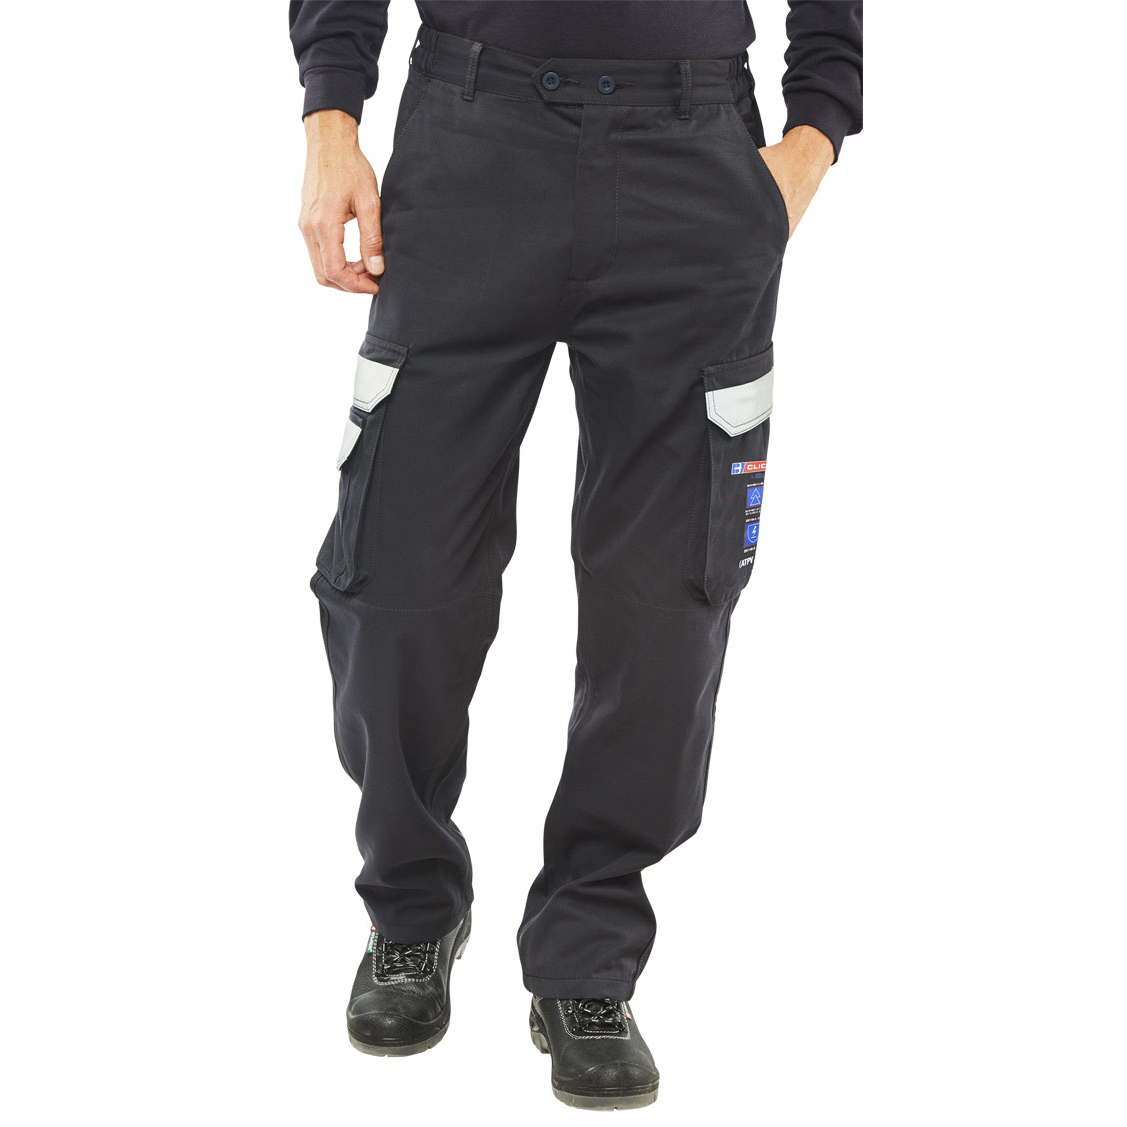 Fire Retardant / Flame Resistant Click Arc Flash Trousers Fire Retardant Navy Blue 32 Ref CARC4N32 *Up to 3 Day Leadtime*